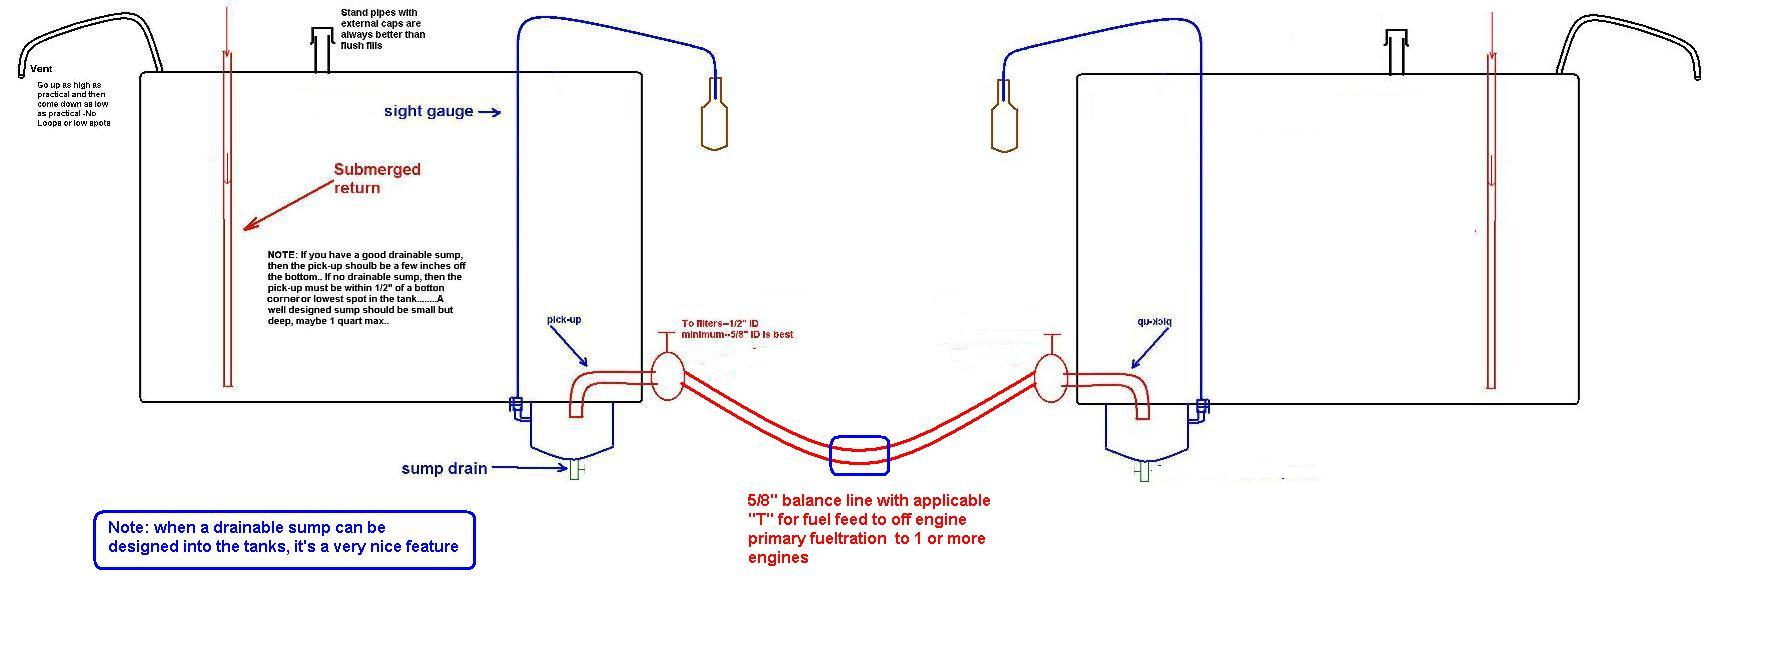 Fuel_Tank_Pick up__Balance_Design proper marine fuel tank pick up & balance design seaboard marine Trailer Wiring Diagram at webbmarketing.co